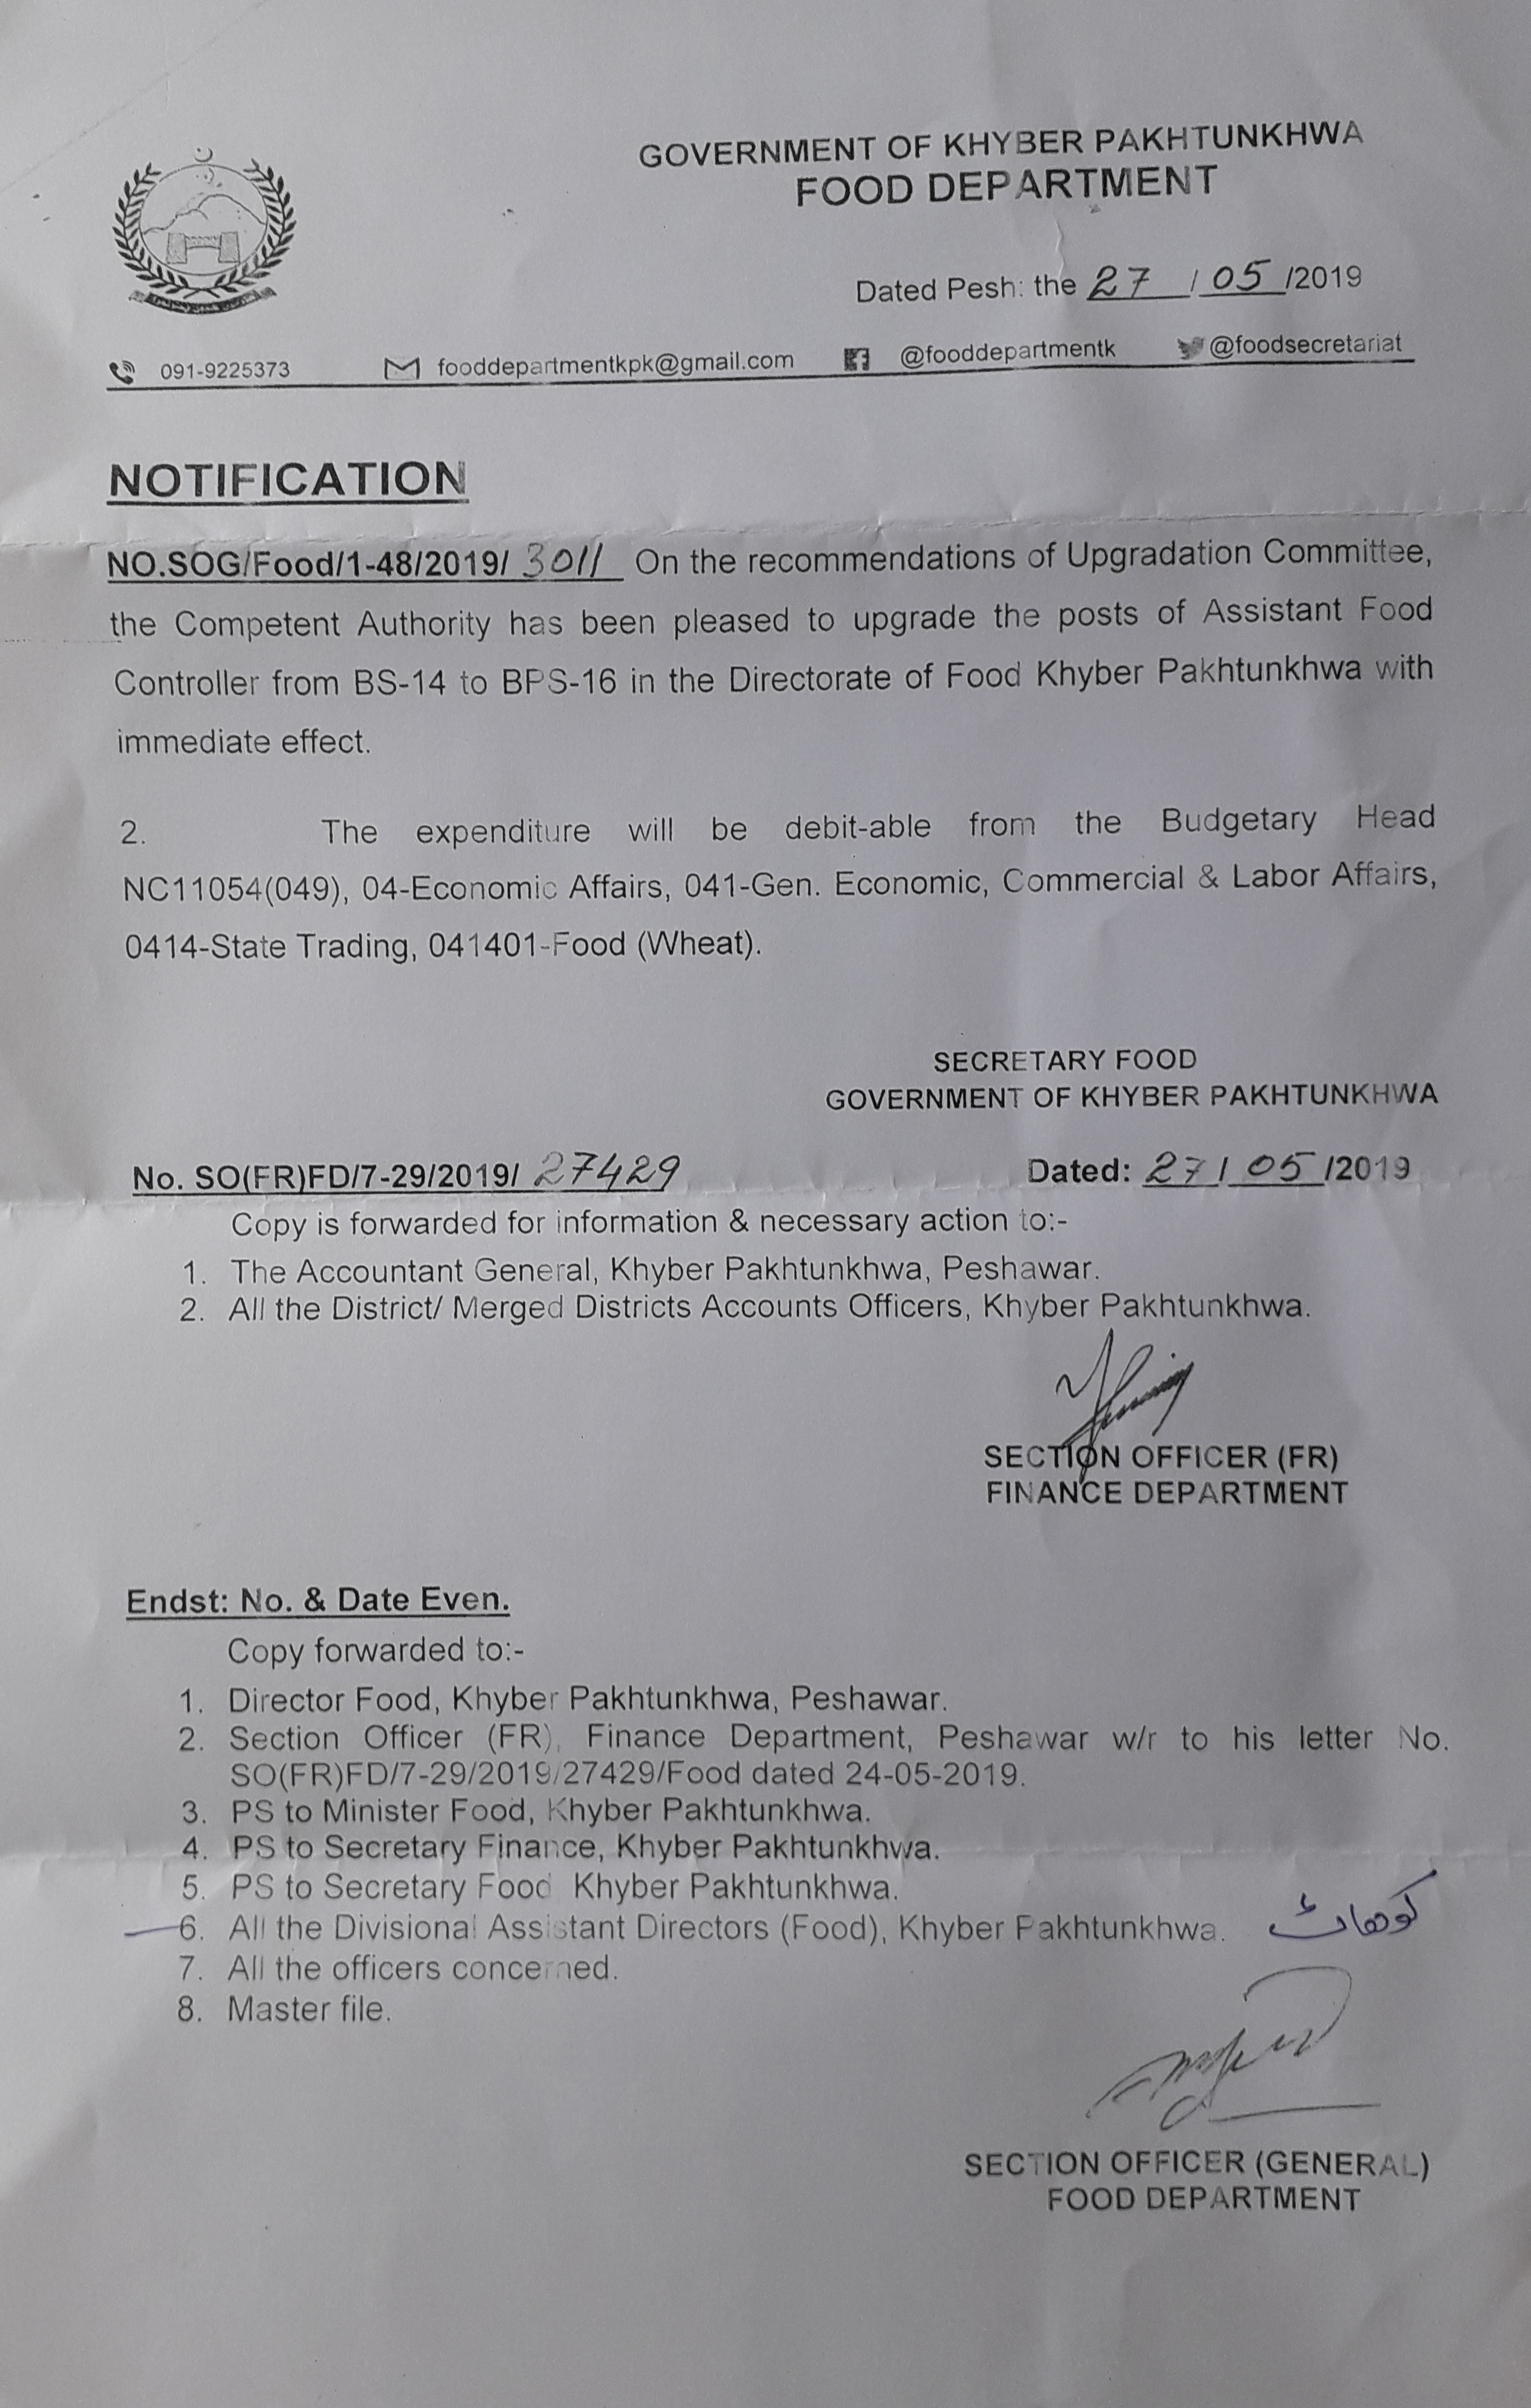 Notification of Upgradation Assistant Food Controller from BPS-14 to BPS-16